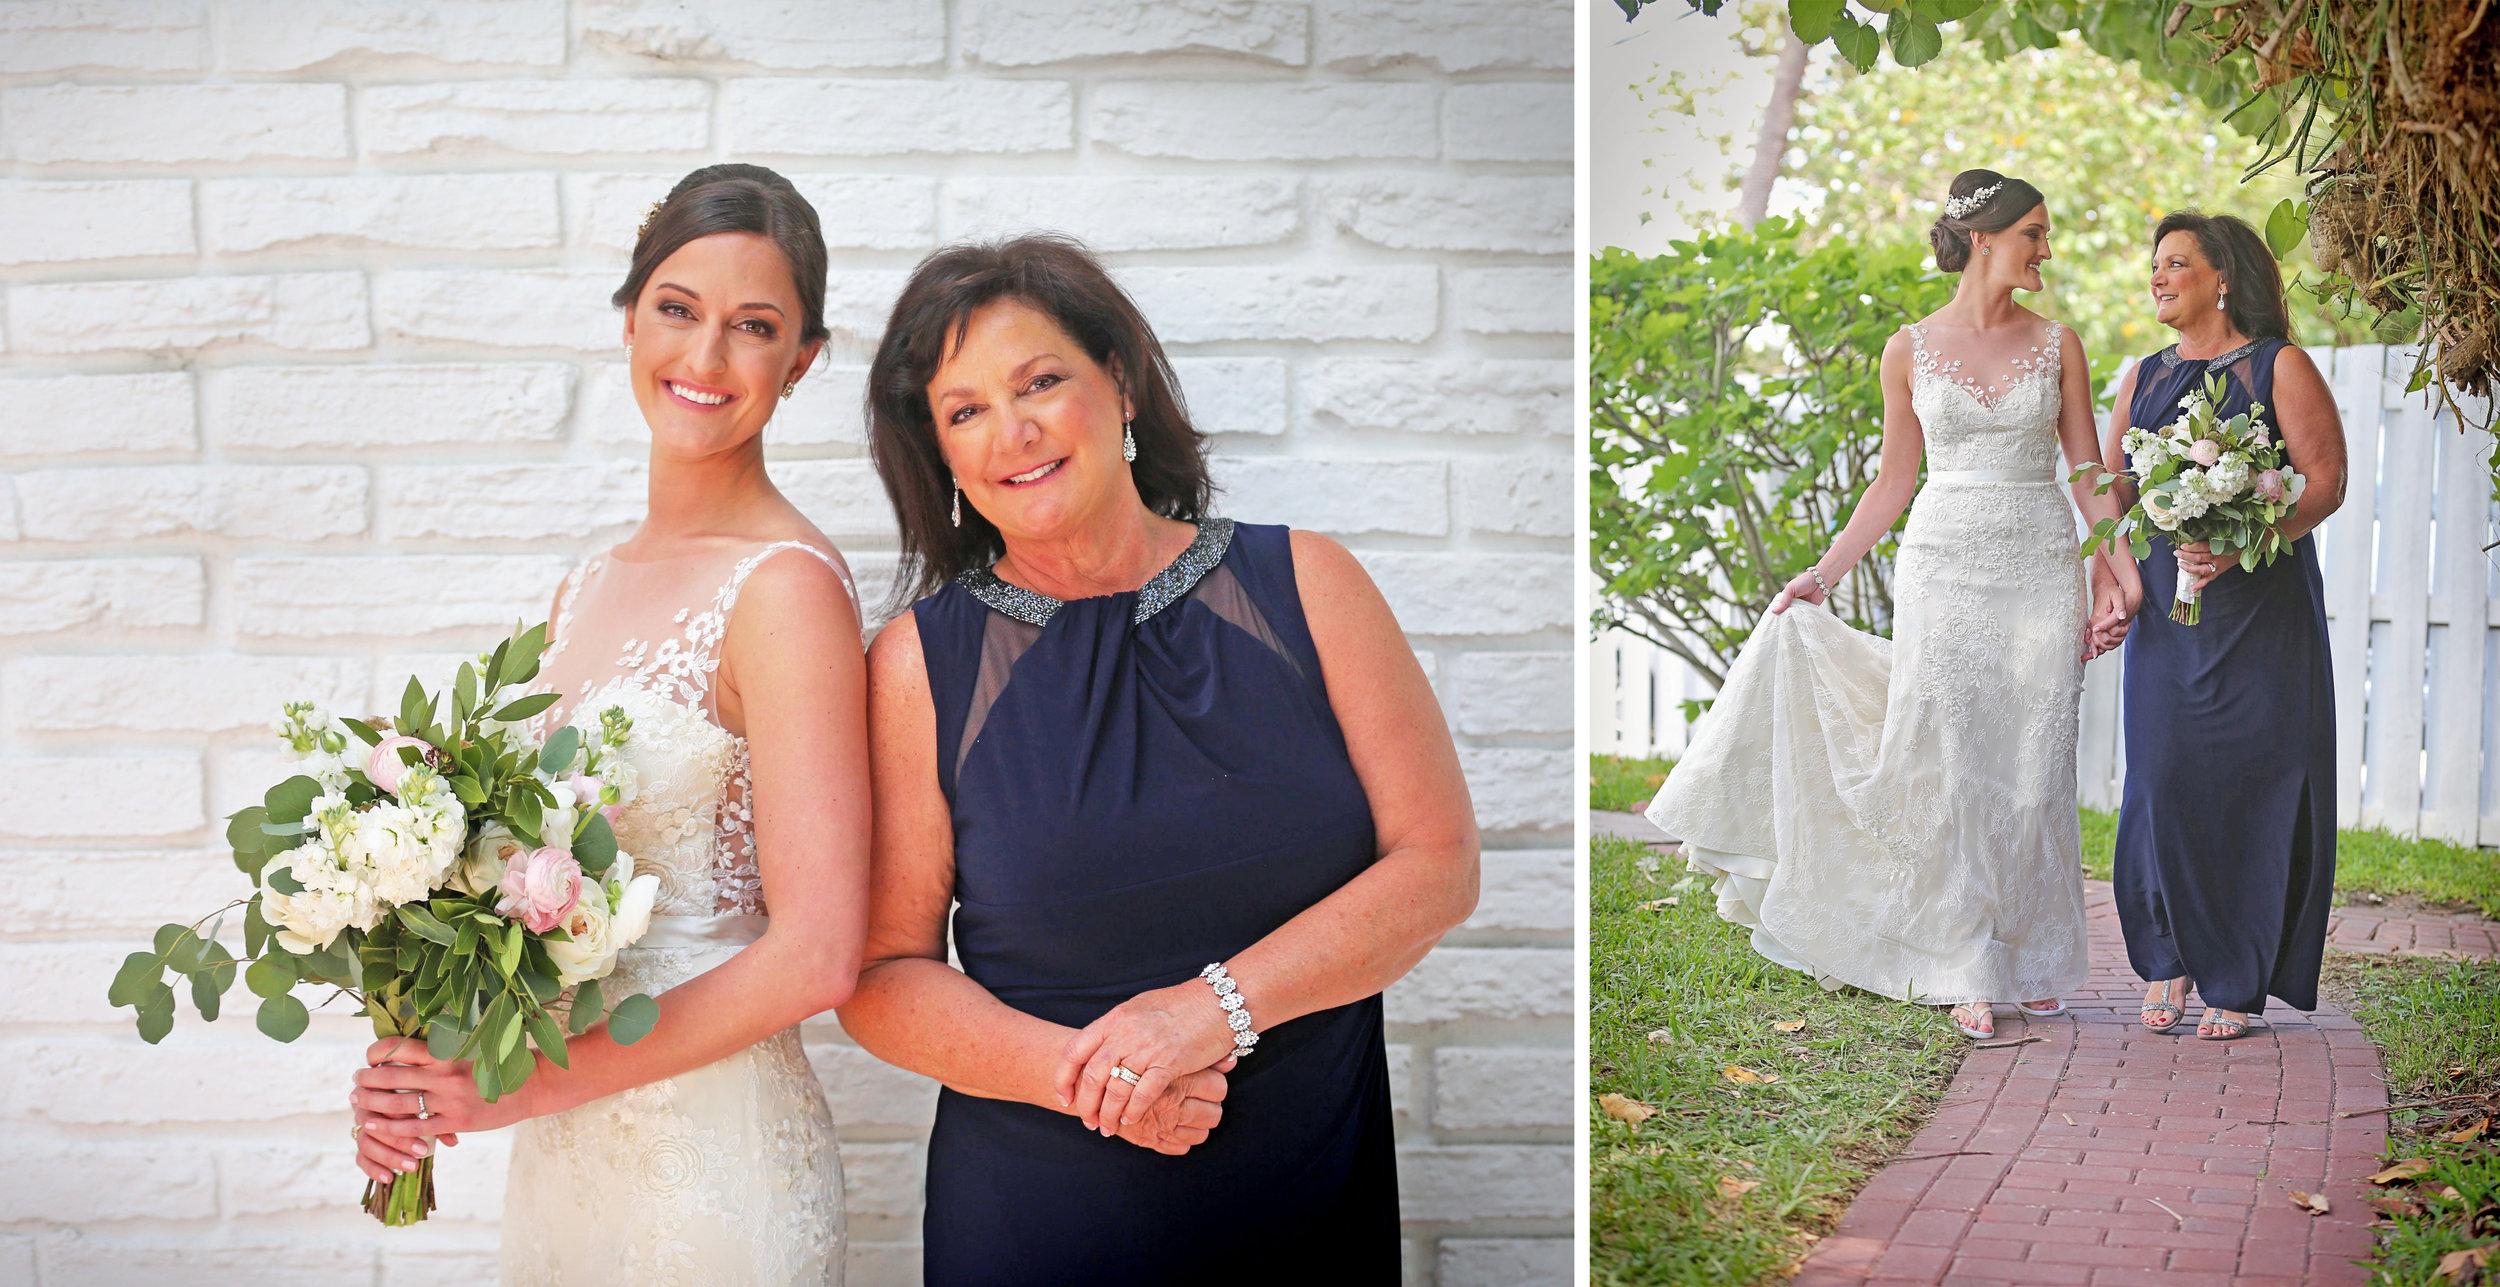 The bride and her mother looked absolutely gorgeous together!